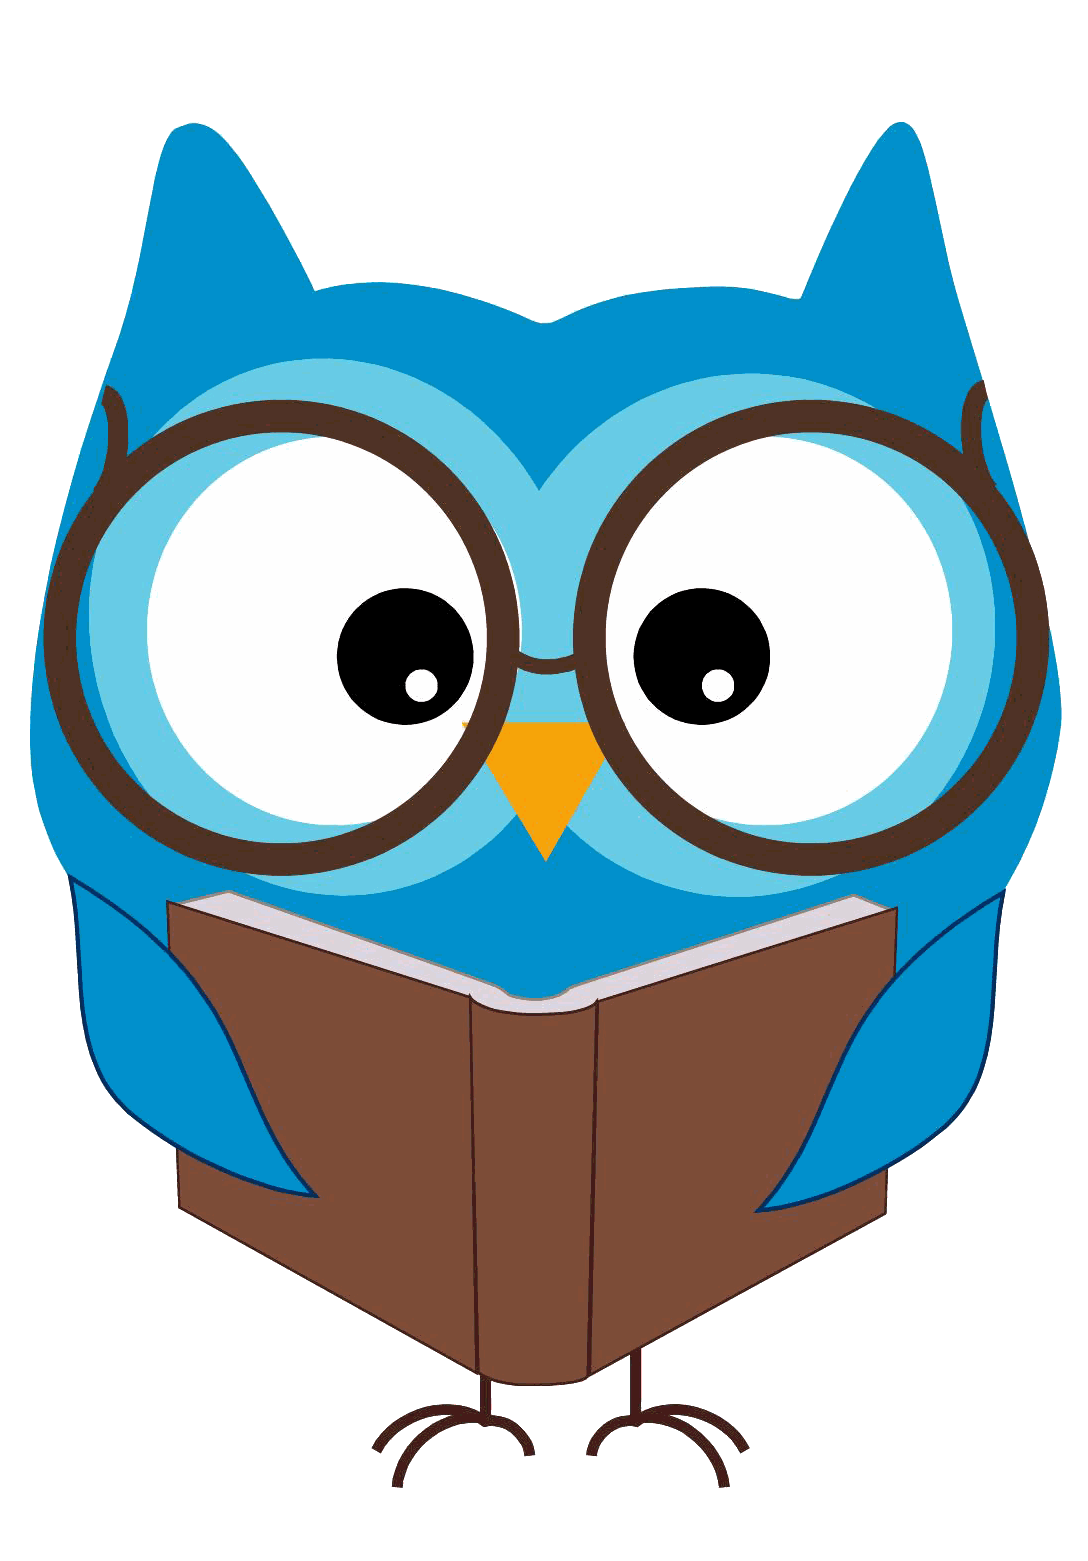 Cute at getdrawings com. Paper clipart owl